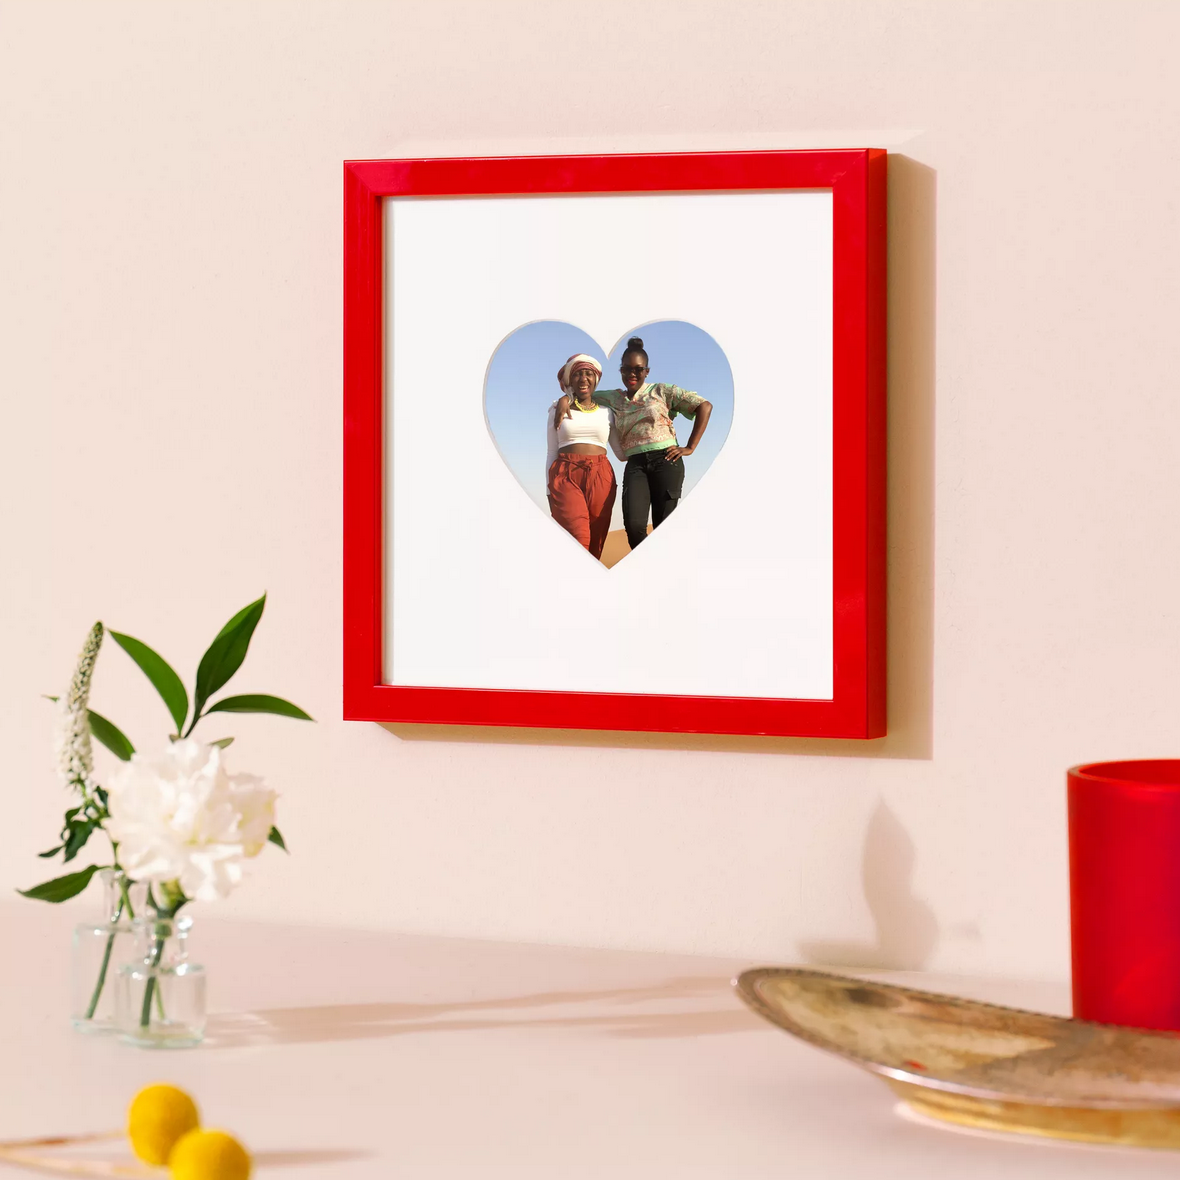 red frame with heart shaped mat